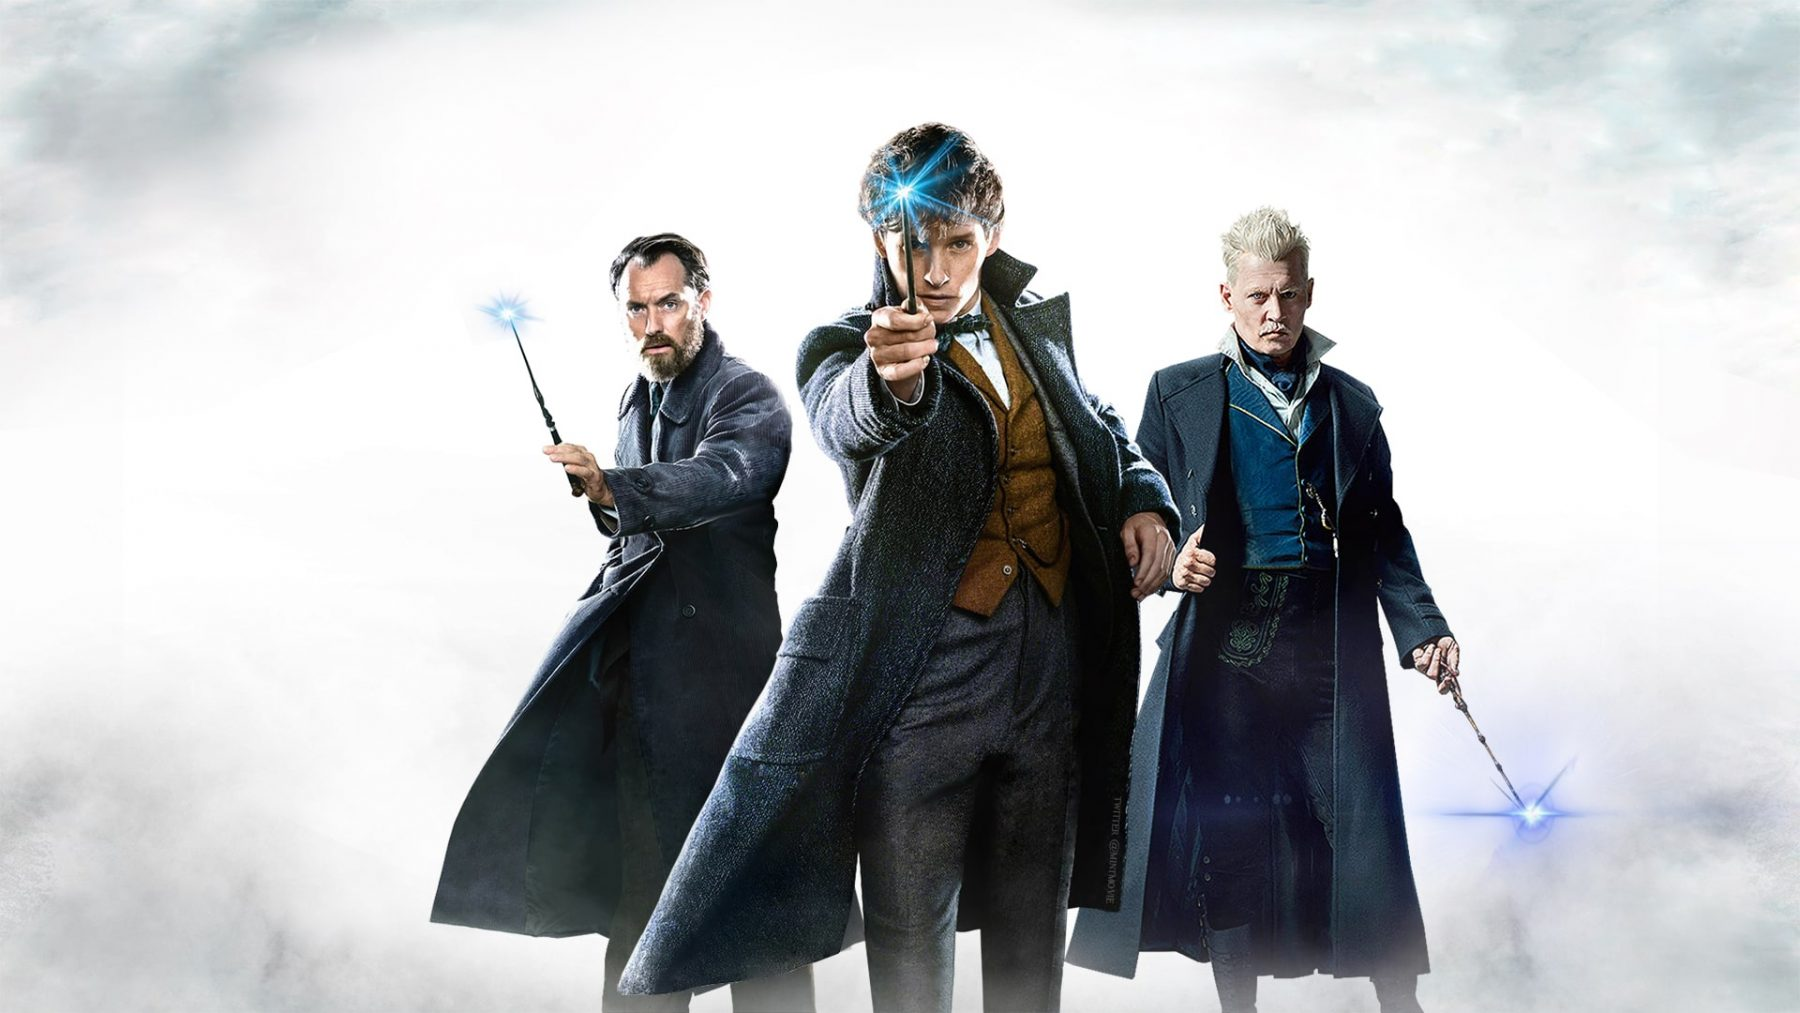 Fantastic Beasts The Crimes Of Grindelwald Hd Wallpapers